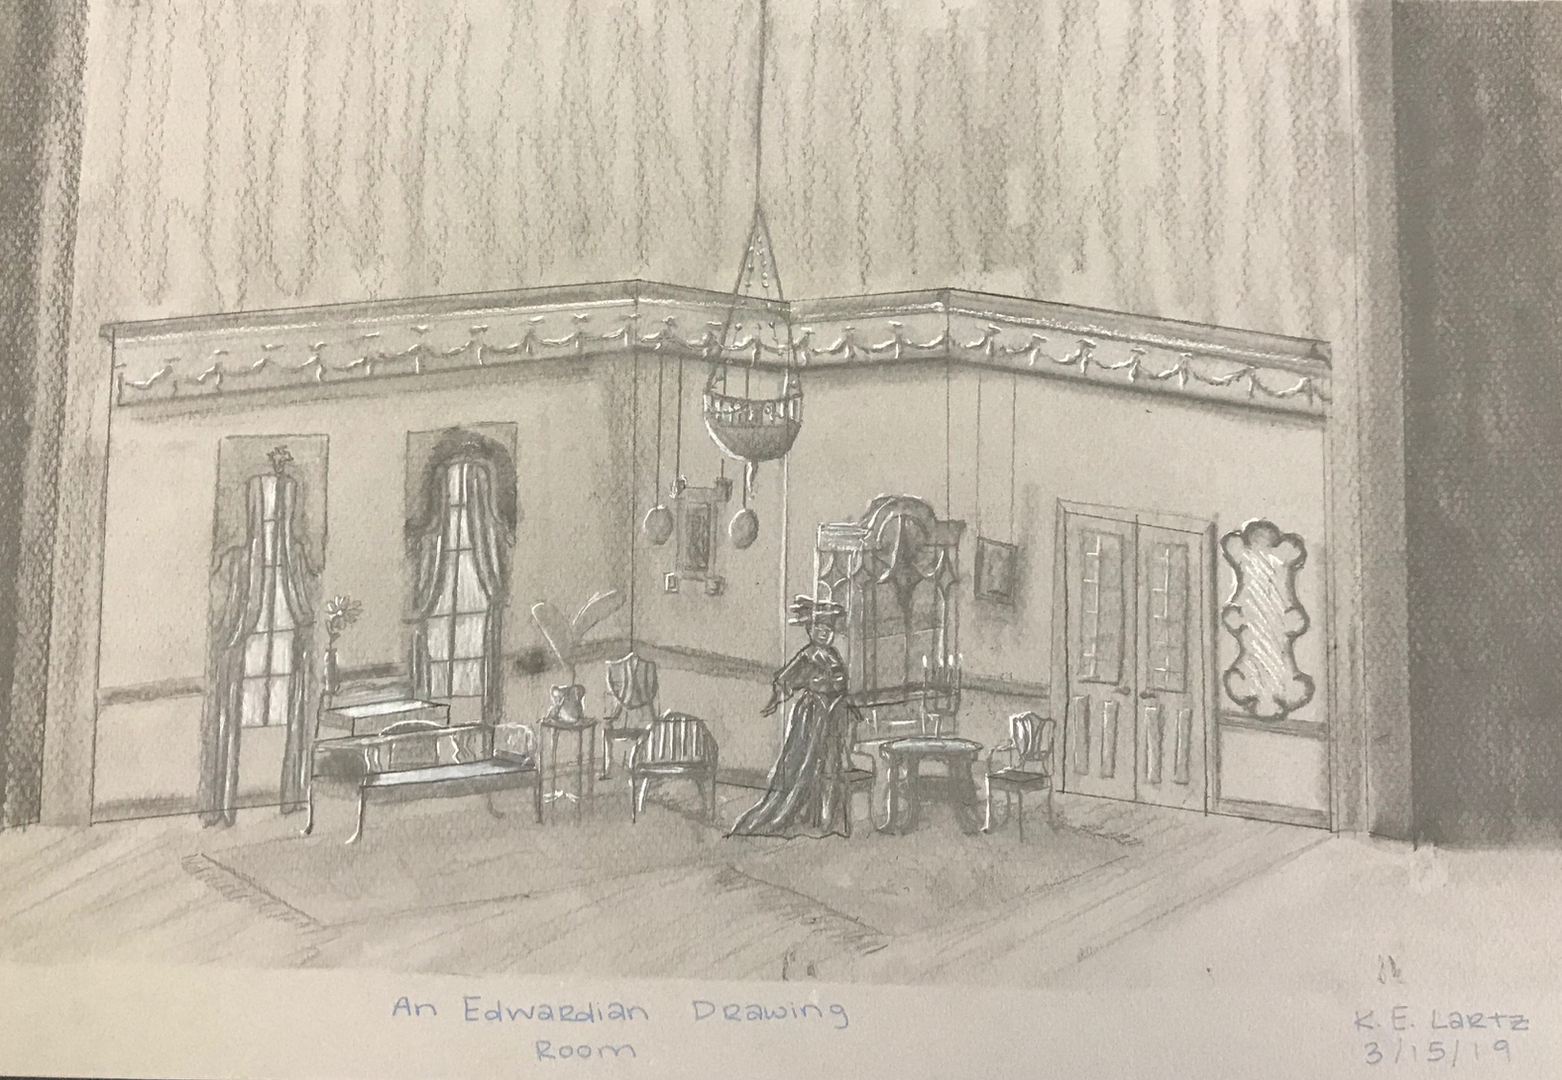 An Edwardian Drawing Room